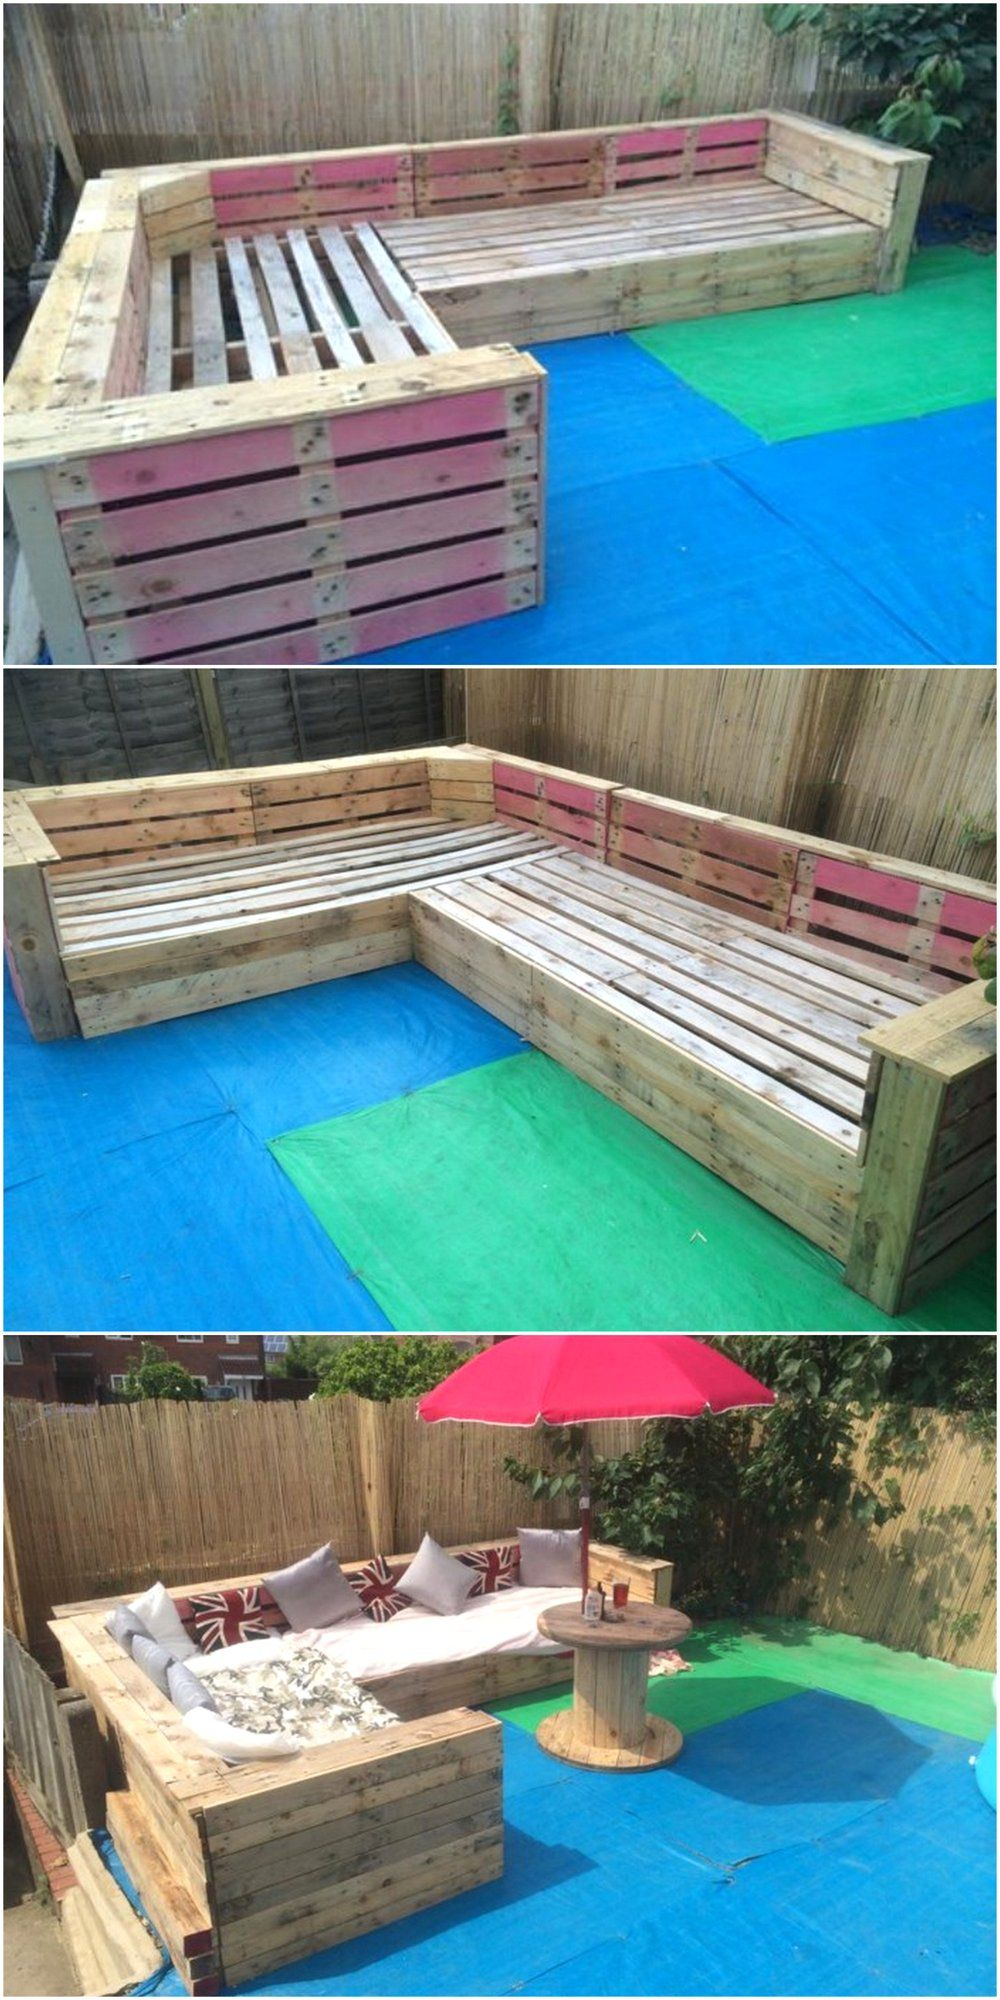 Patio Garden Corner Seating with Pallets #palletideas